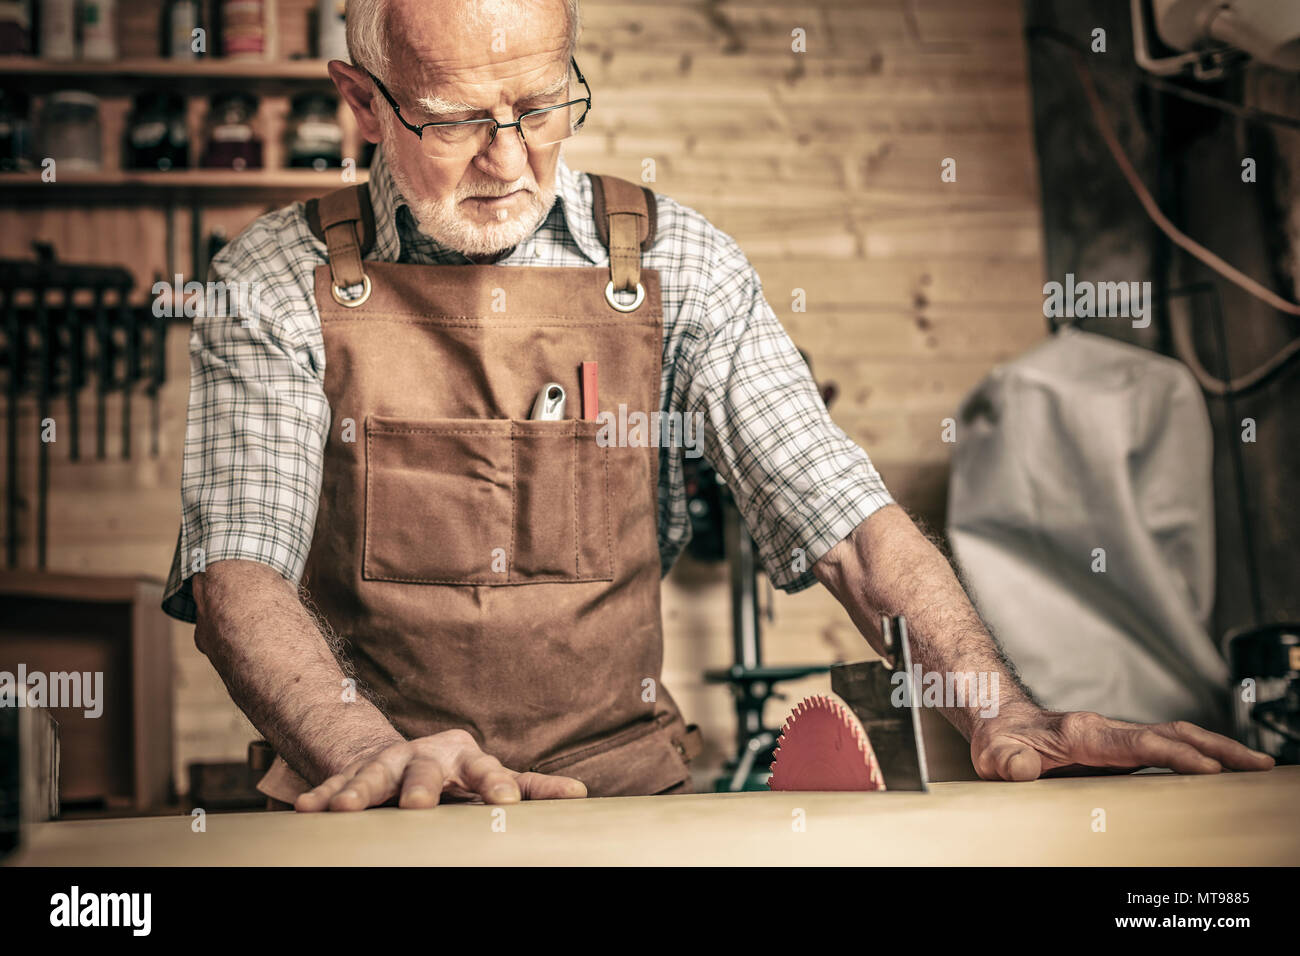 professional carpenter works with a saw bench in his workshop - Stock Image